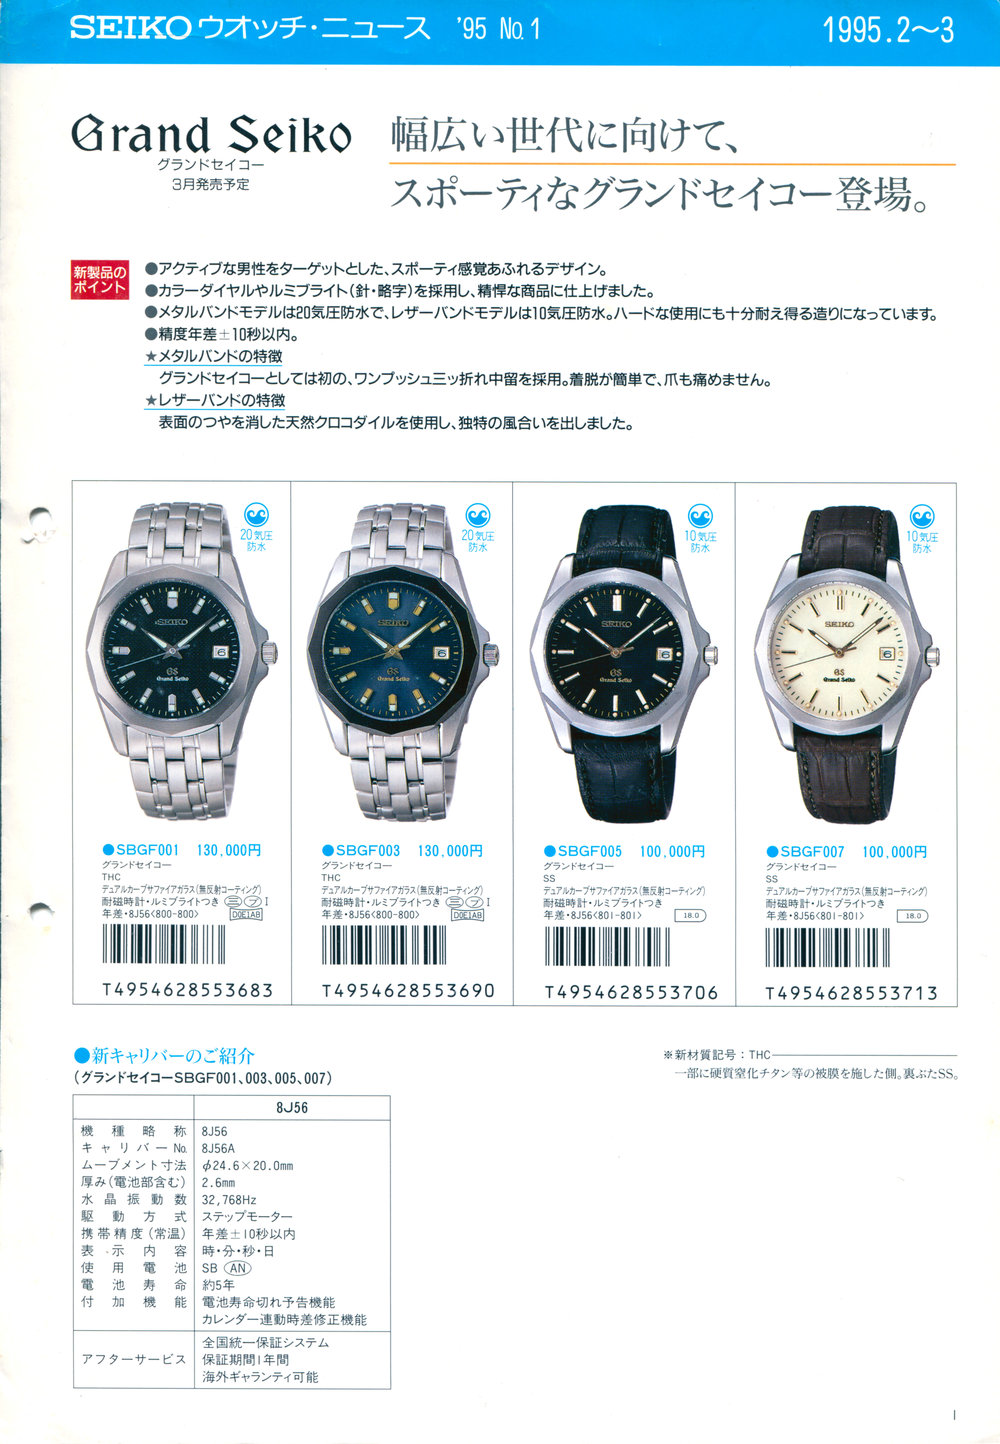 Seiko News 1995-2 Vol. 1